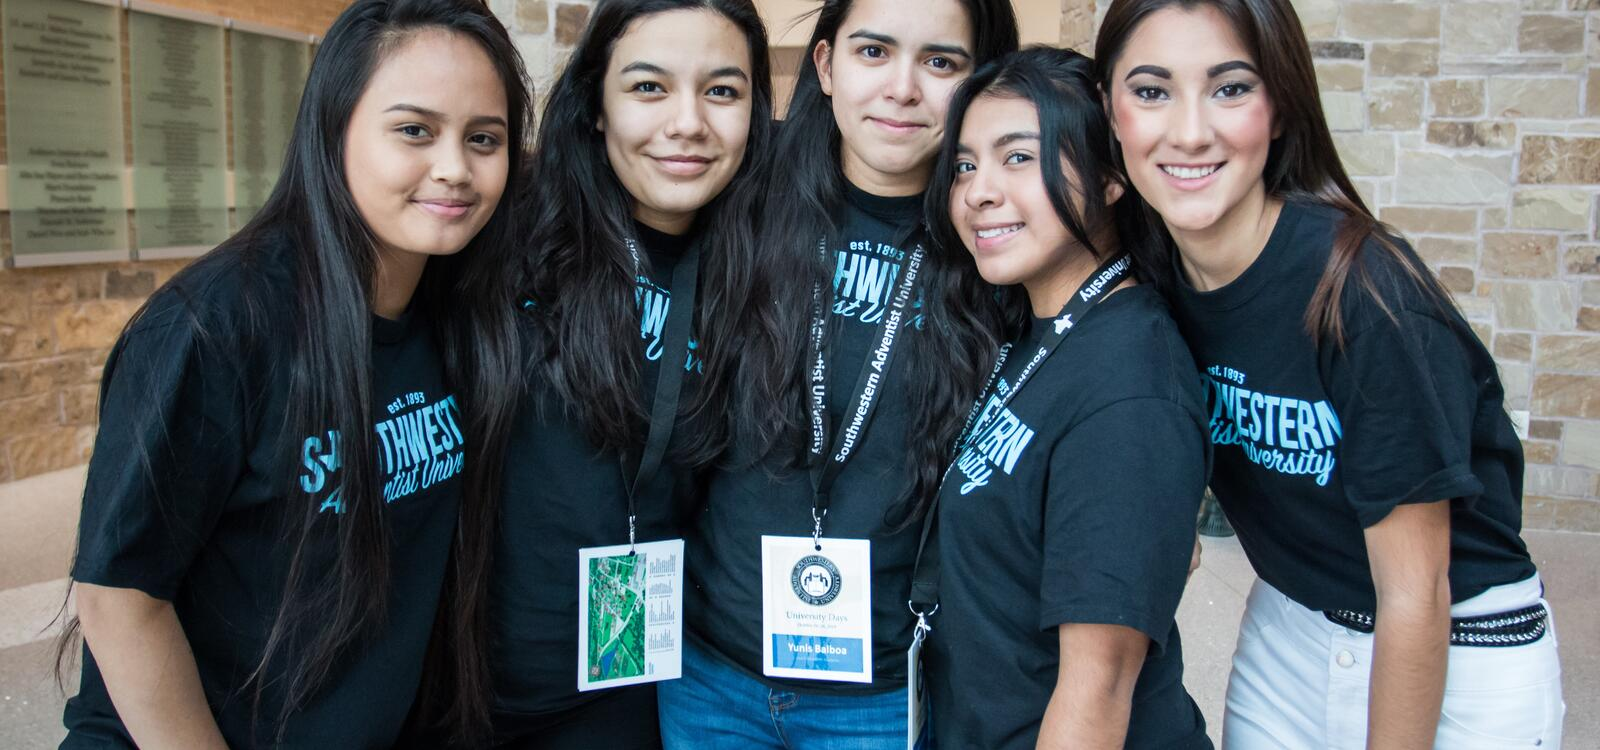 A group of five high school senior girls wearing black t-shirts with a blue Southwestern logo hugging eachother as they smile for a photo